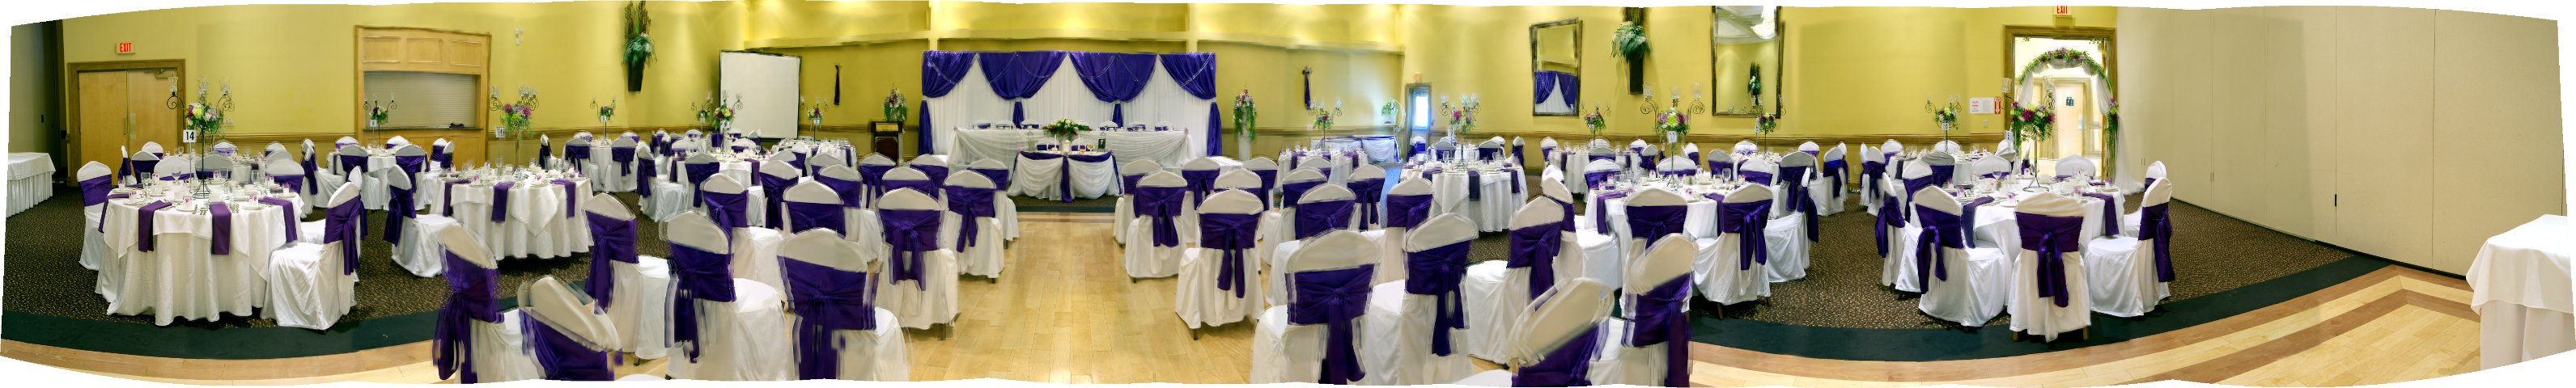 wedding ceremony in hall c with navy blue chair covers